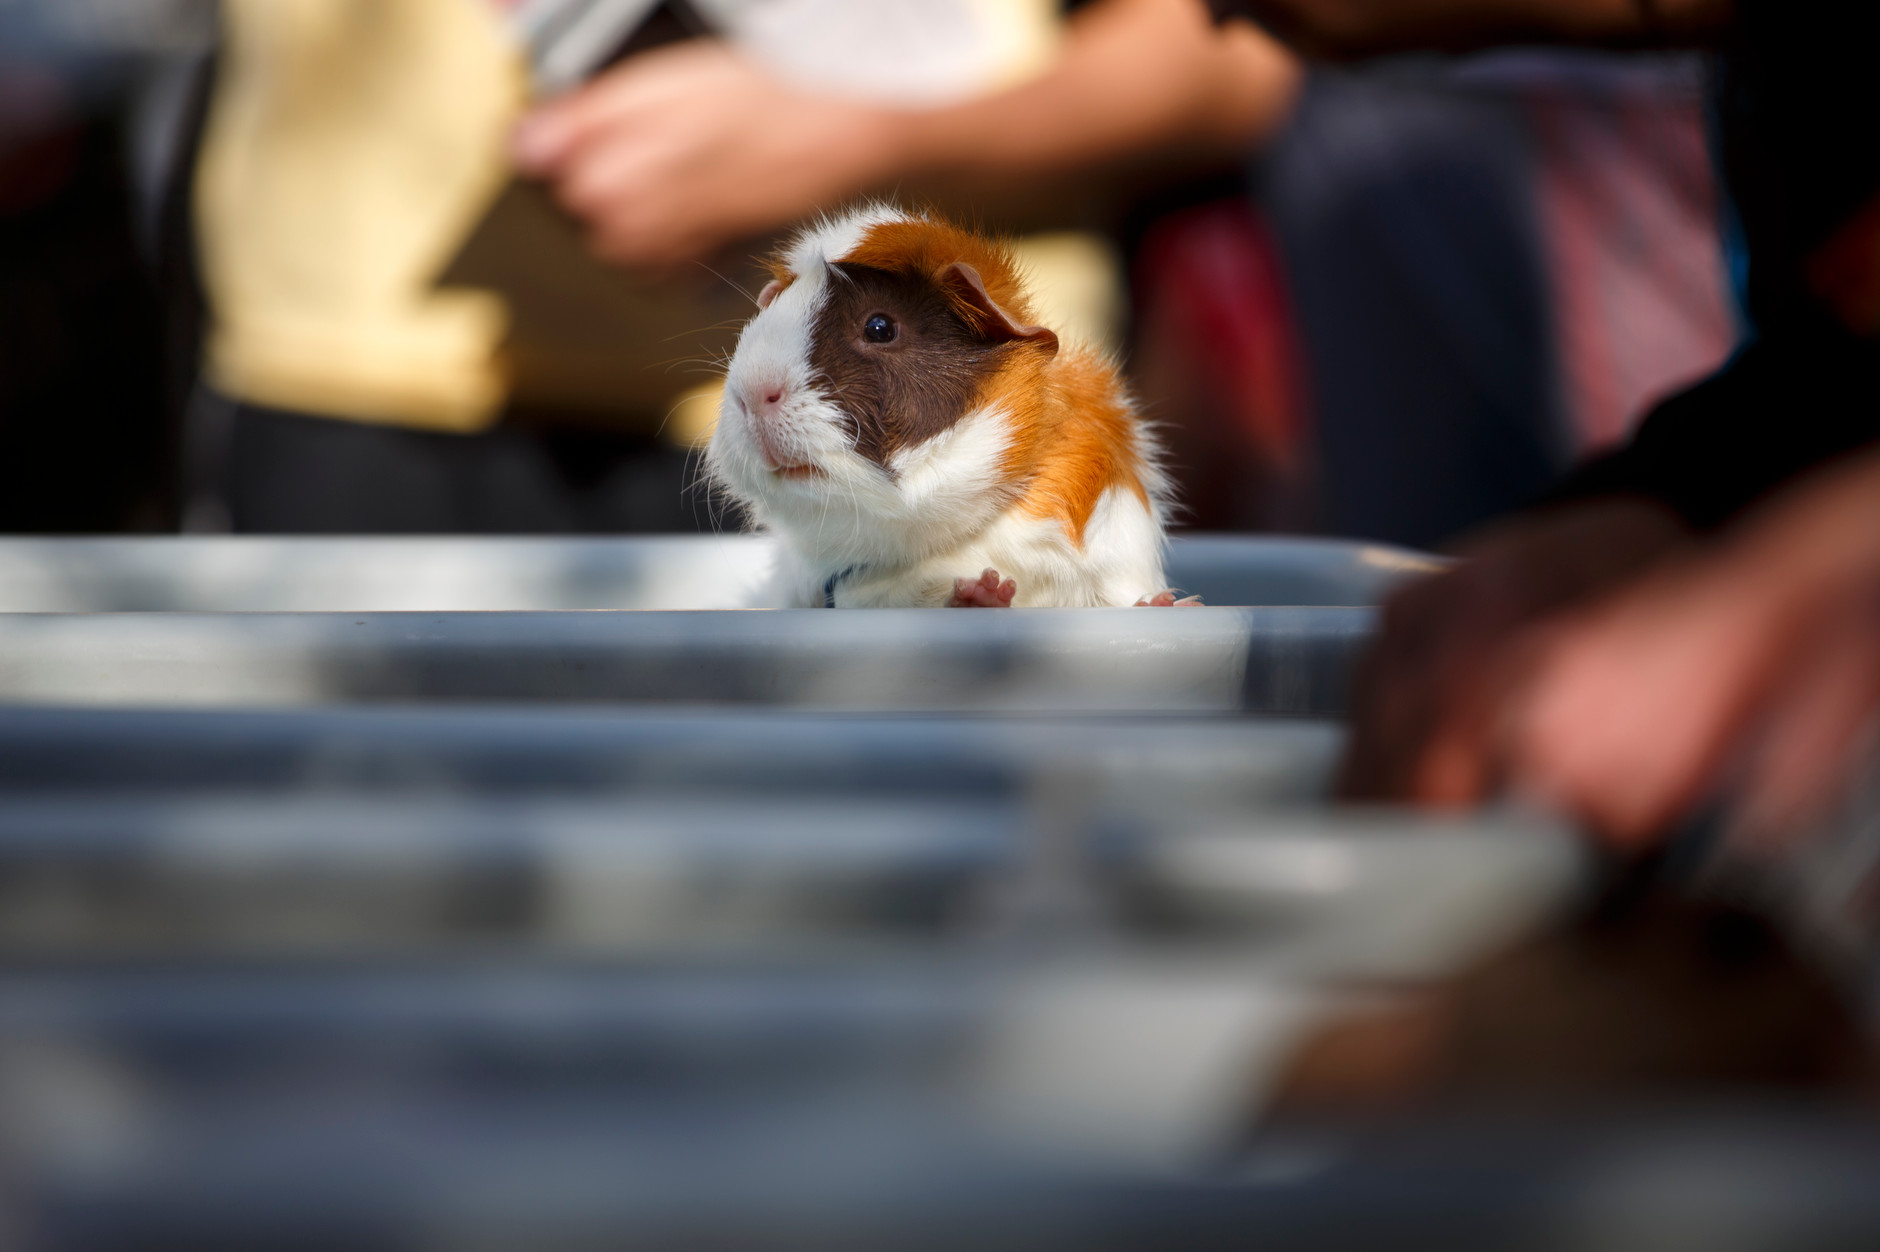 Tono, a guinea pig from Zoo'Opolis Exotic Petting Zoo, peaks out of his tray, during the First Thursdays Festival on the Arts Plaza at IU Bloomington on Thursday, Sept. 5, 2019. (James Brosher/Indiana University)